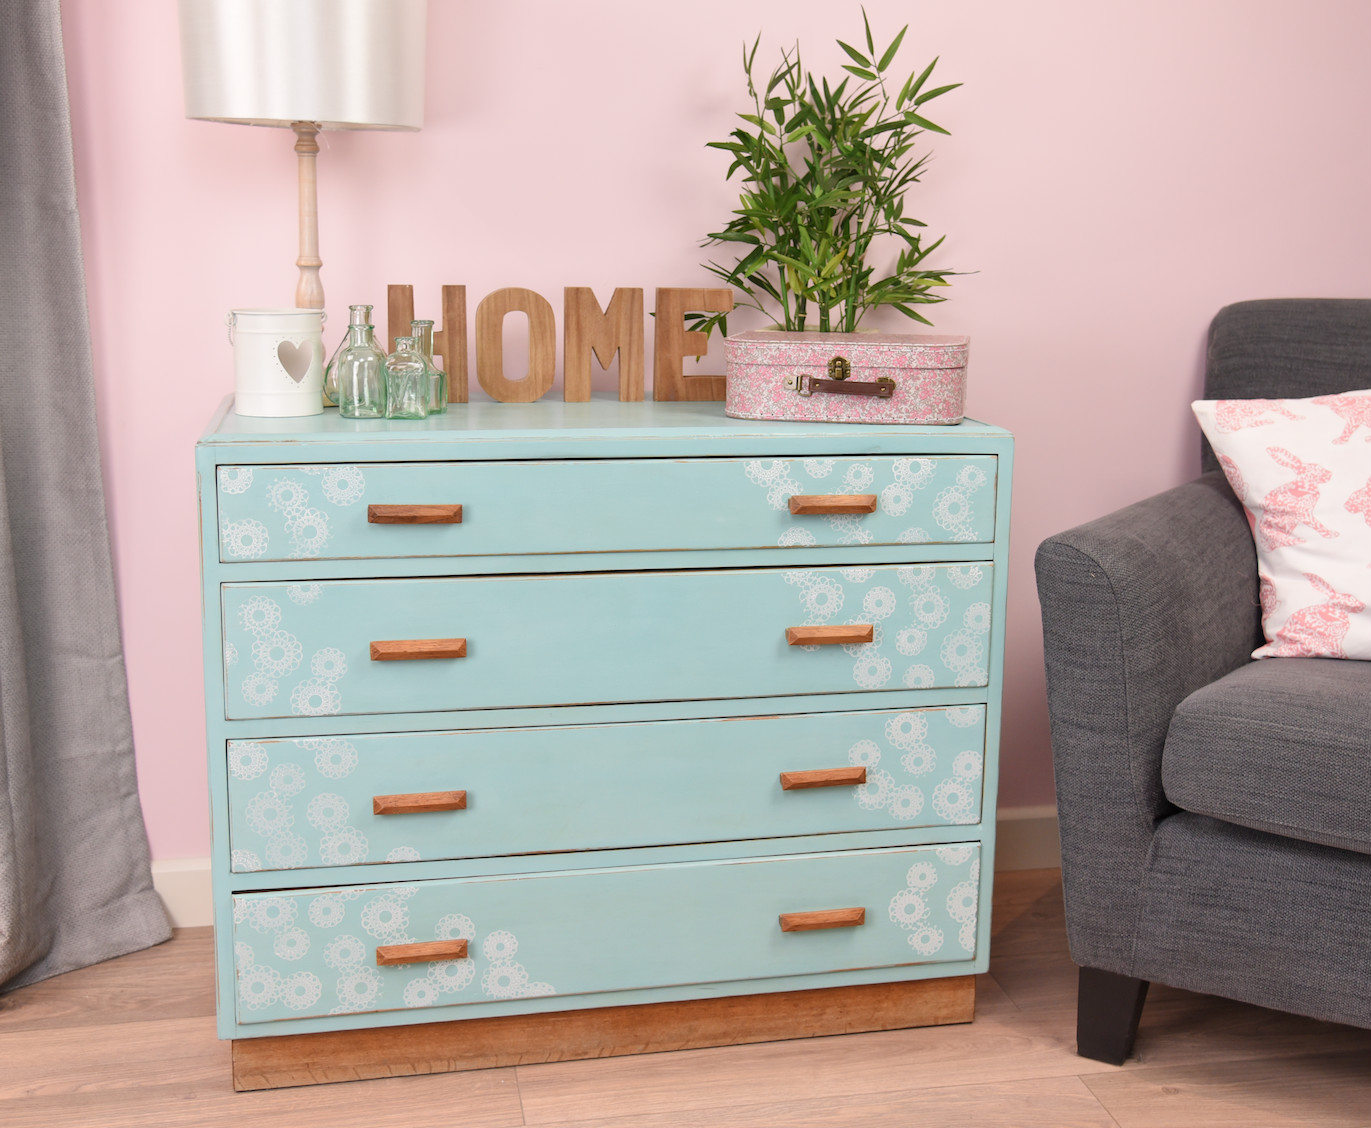 Upcycled-drawers